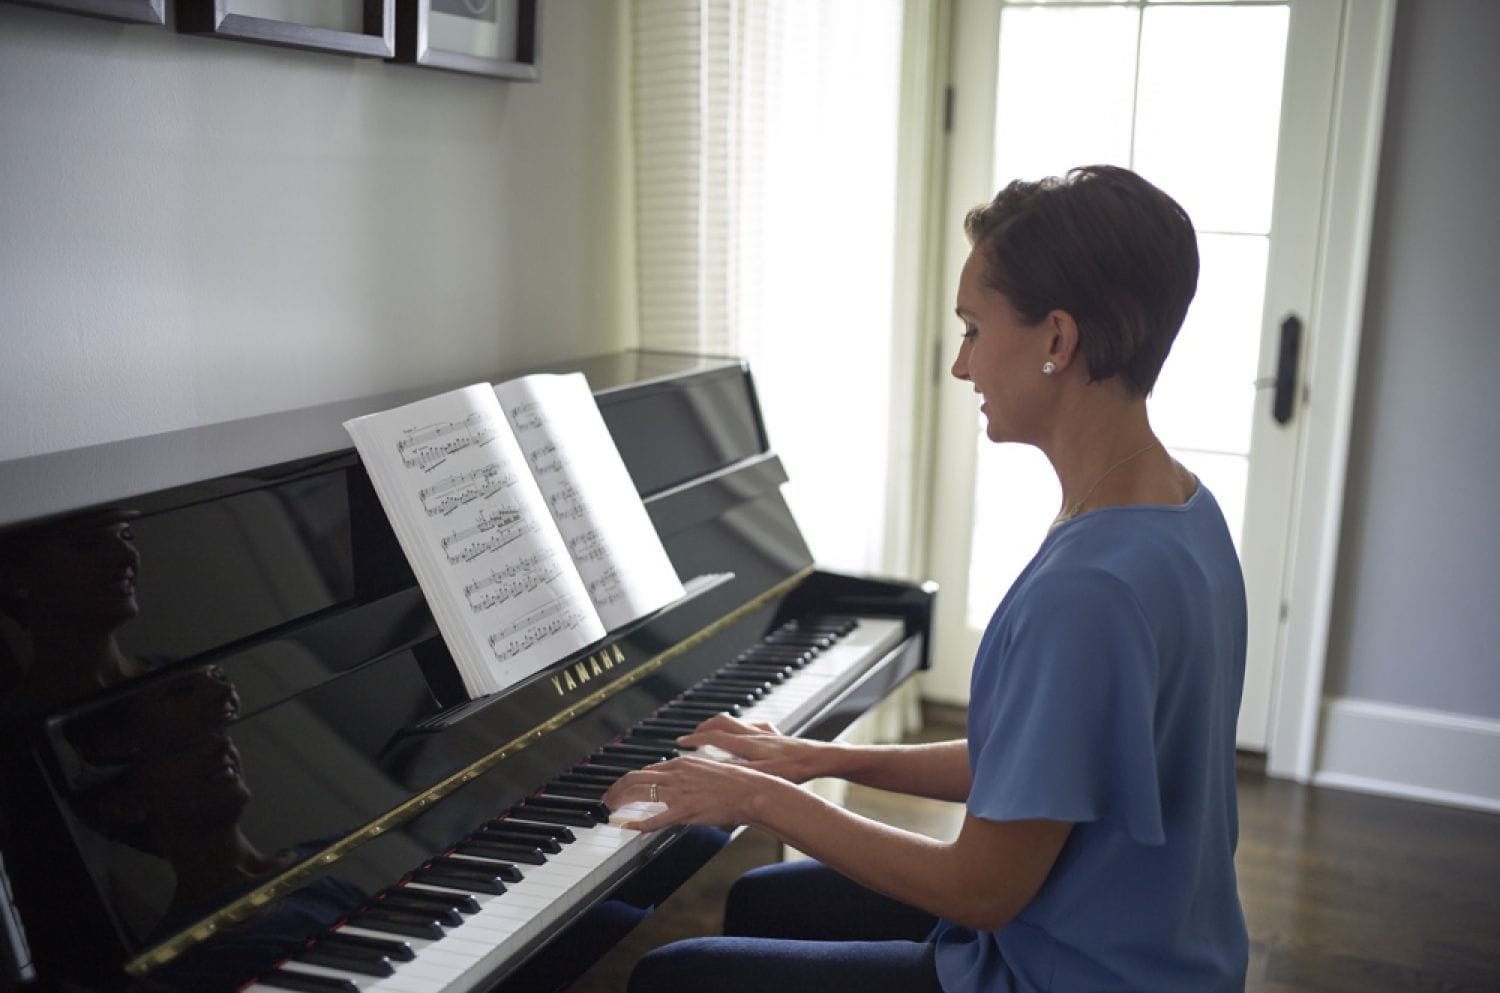 Woman in her early 30's in her living room playing an upright piano from book of sheet music.